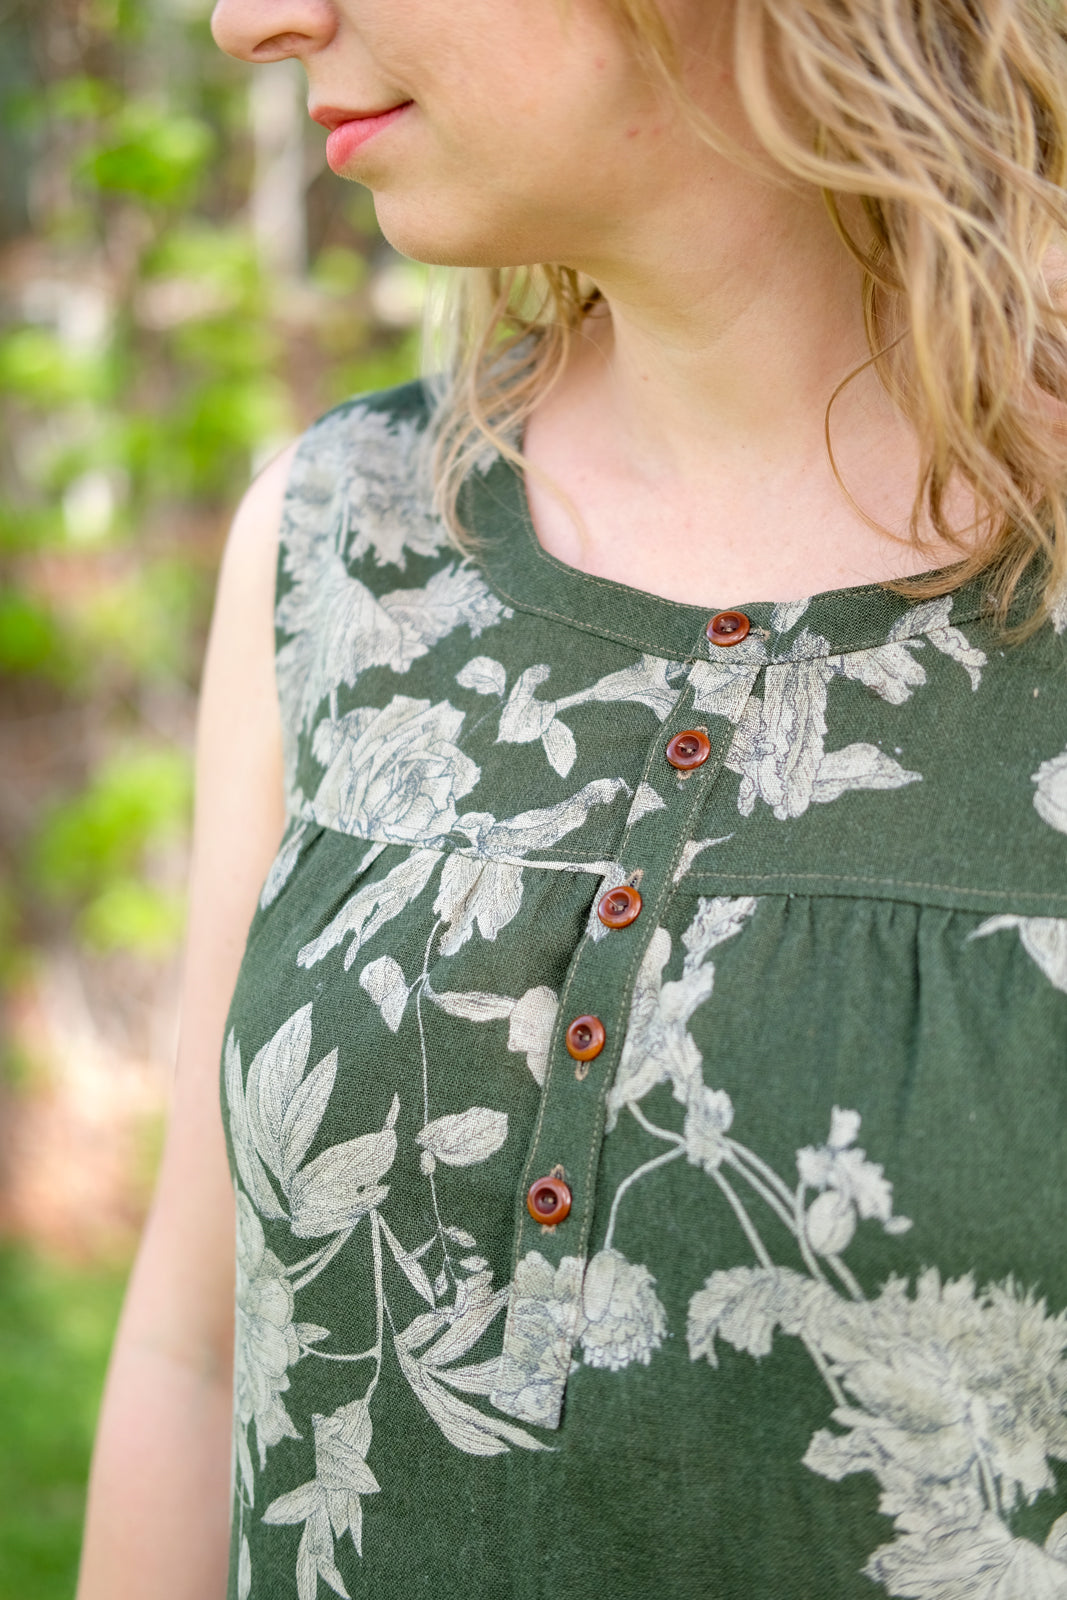 Partial Placket Detail on Amber's Green Floral Linen Brome Maxi Dress